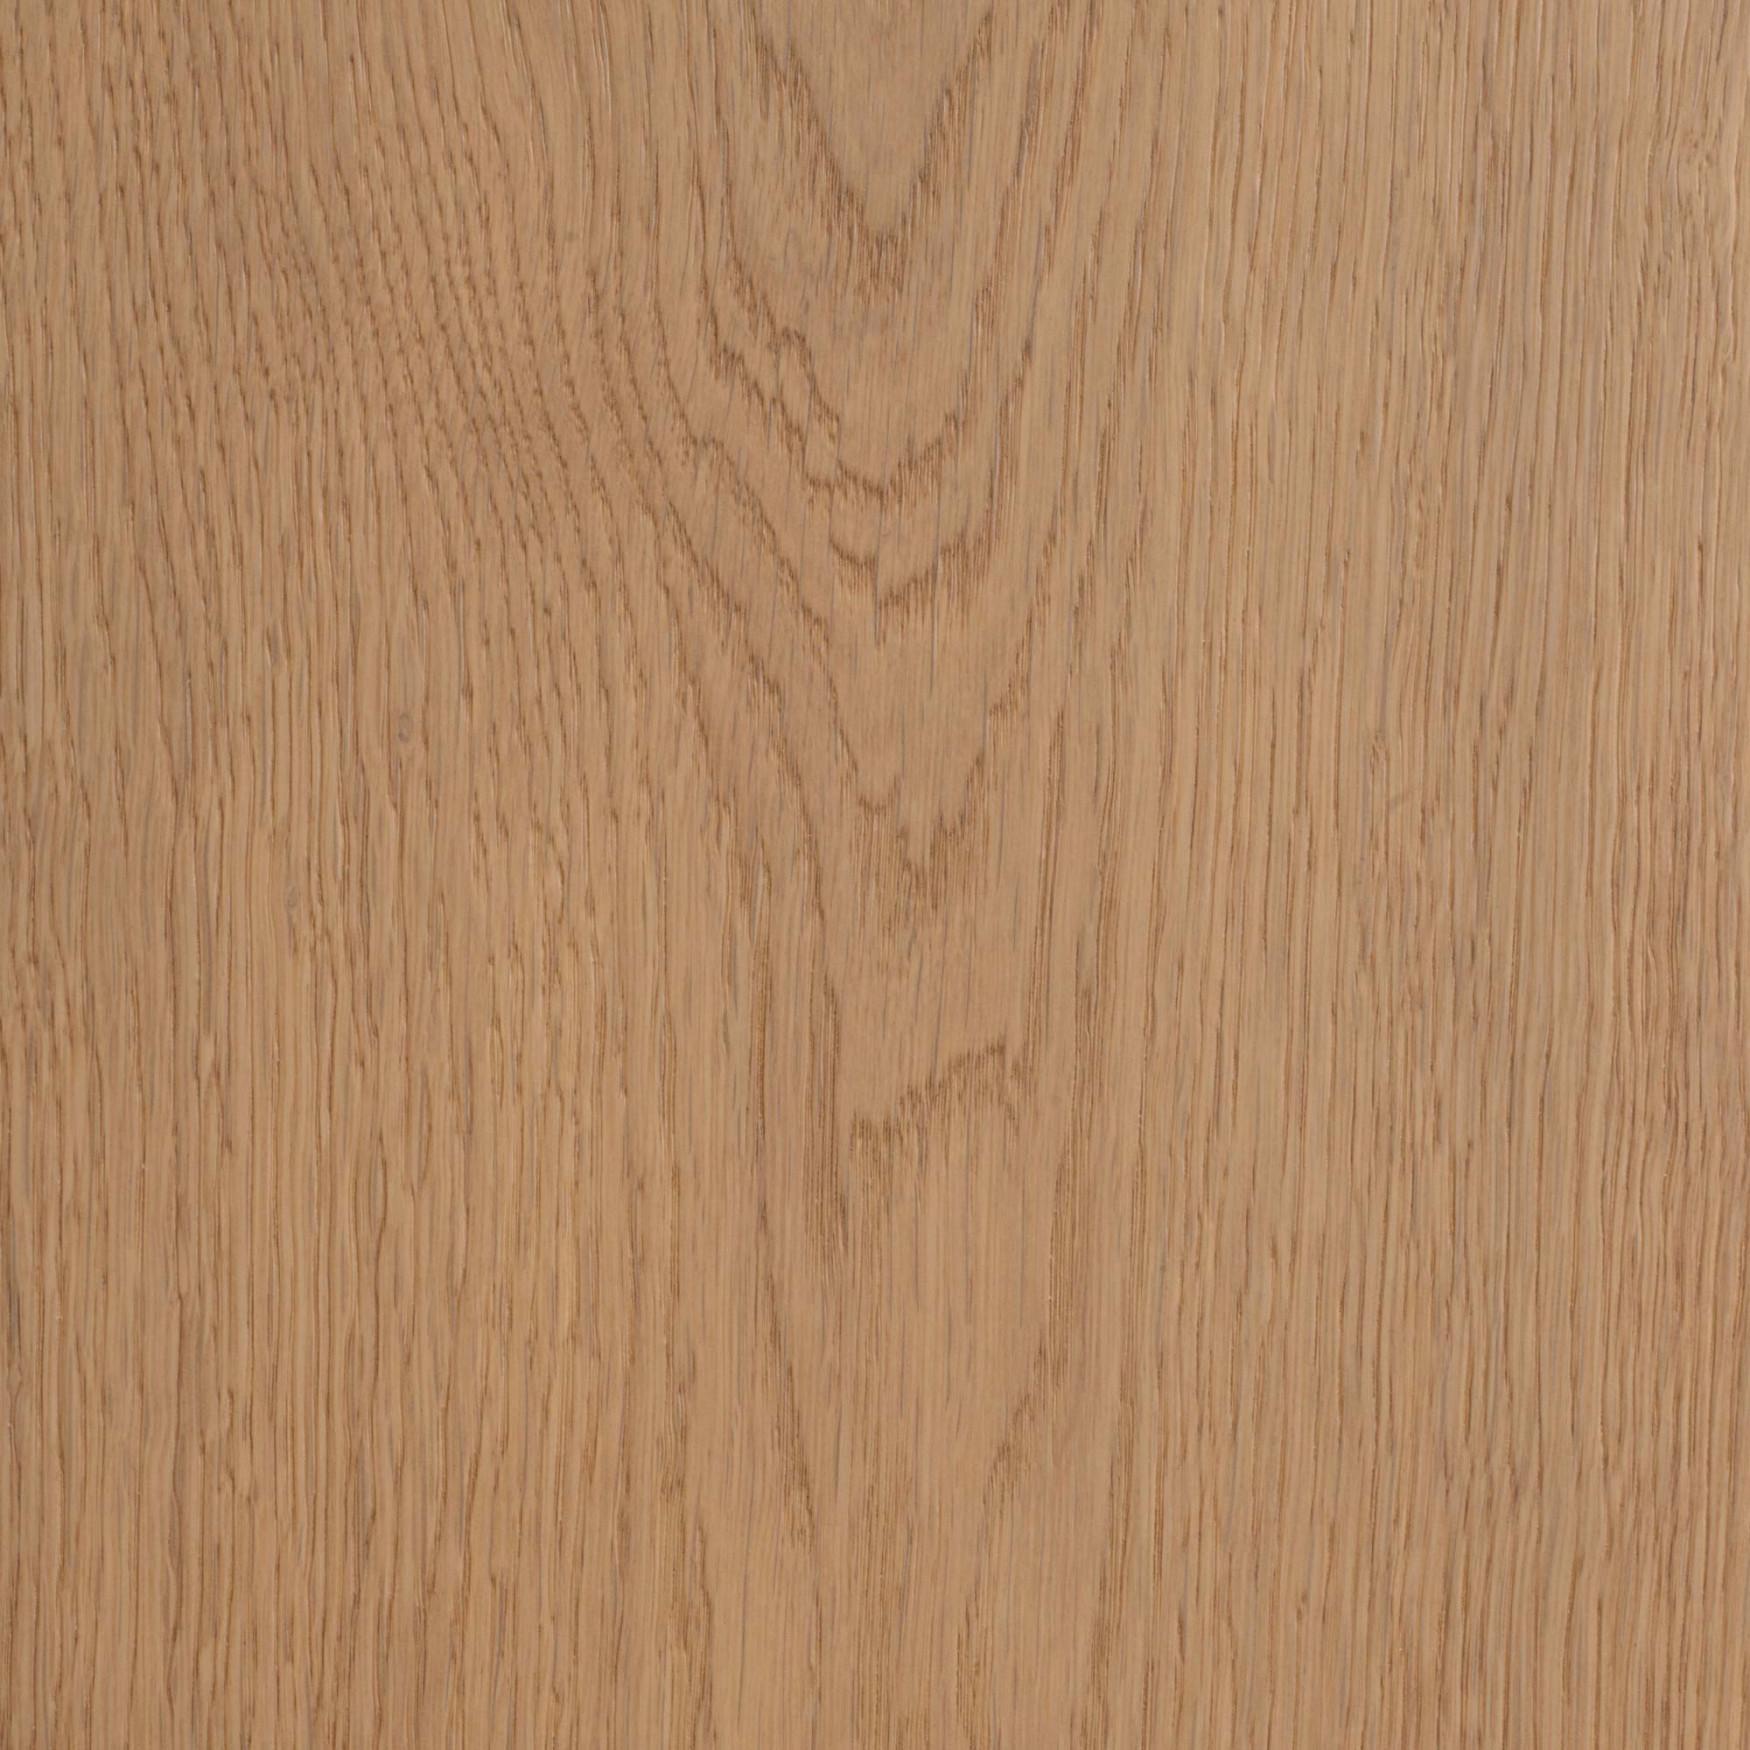 element7-wide-plank-samples-english-oak-updated